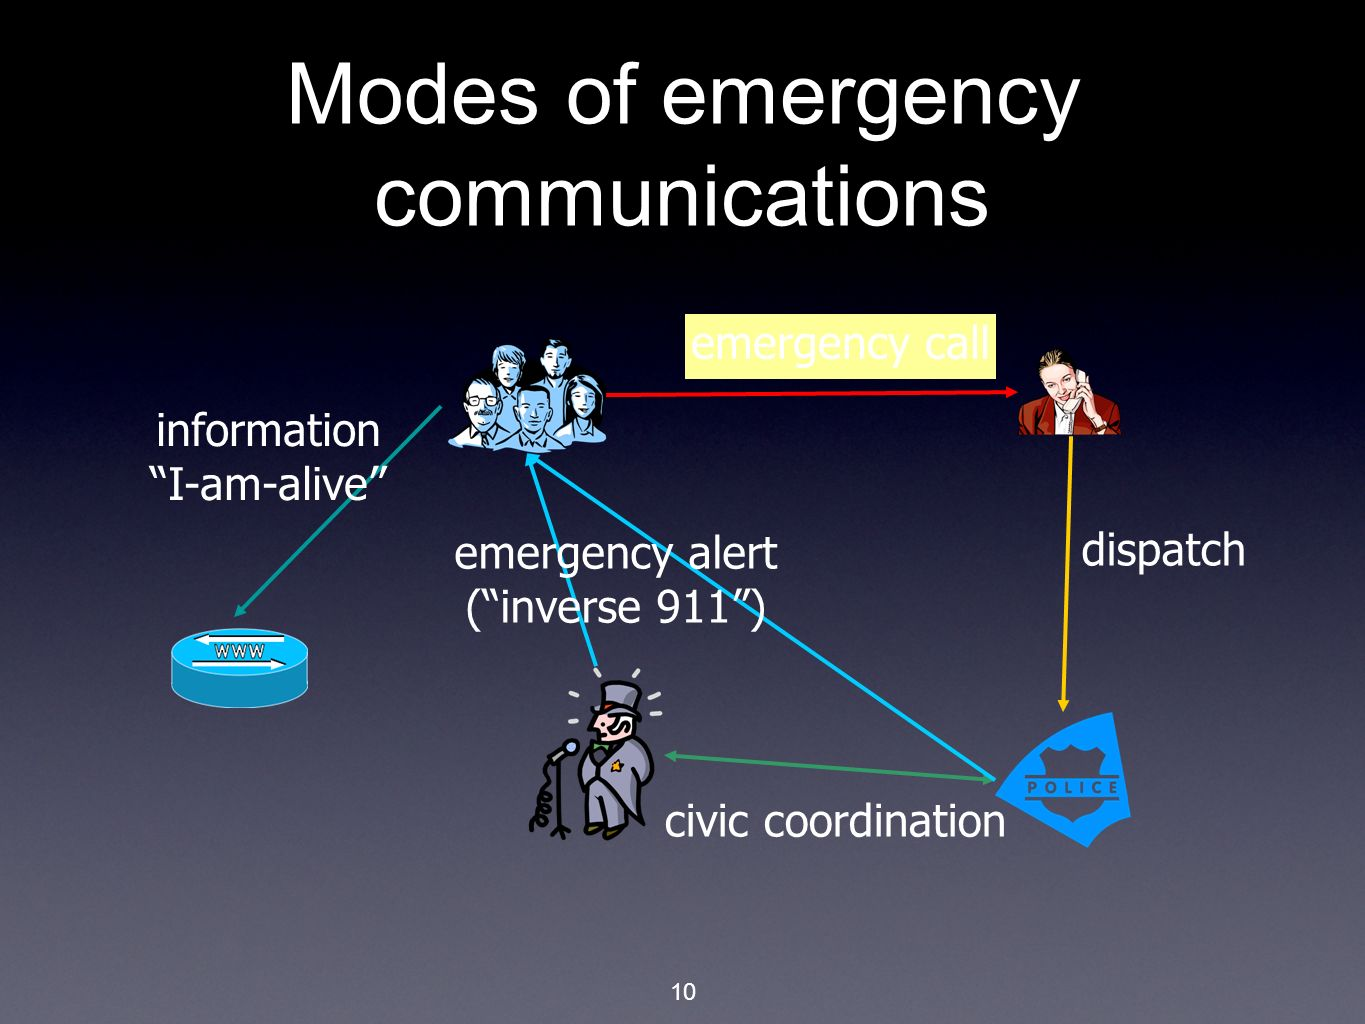 10 Modes of emergency communications emergency call civic coordination emergency alert (inverse 911) dispatch information I-am-alive